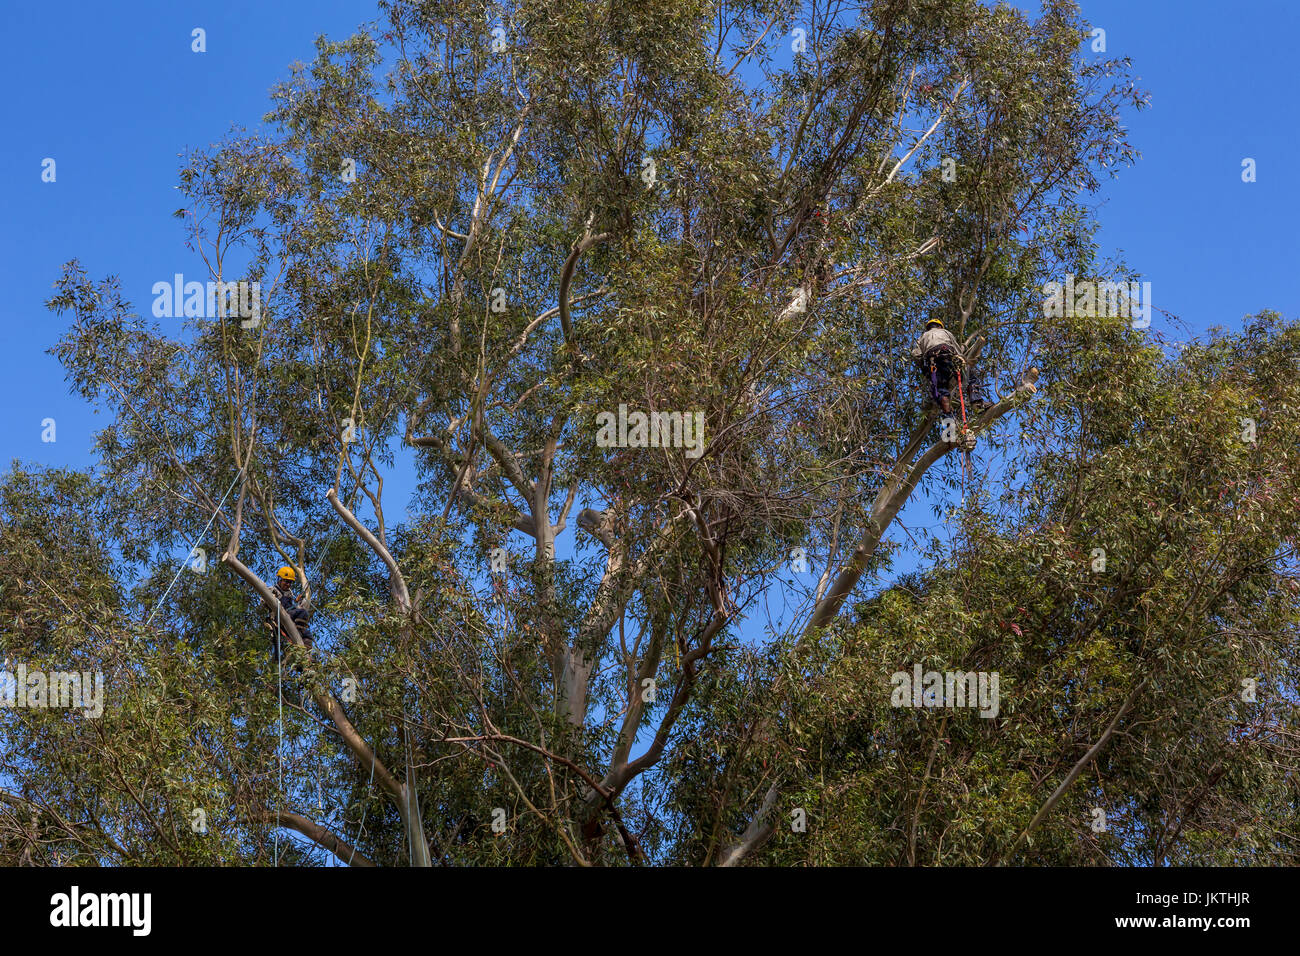 tree trimmer, tree branch trimmer, trimming tree branch, blue-gum eucalyptus tree, tree care, lumberman, city of - Stock Image